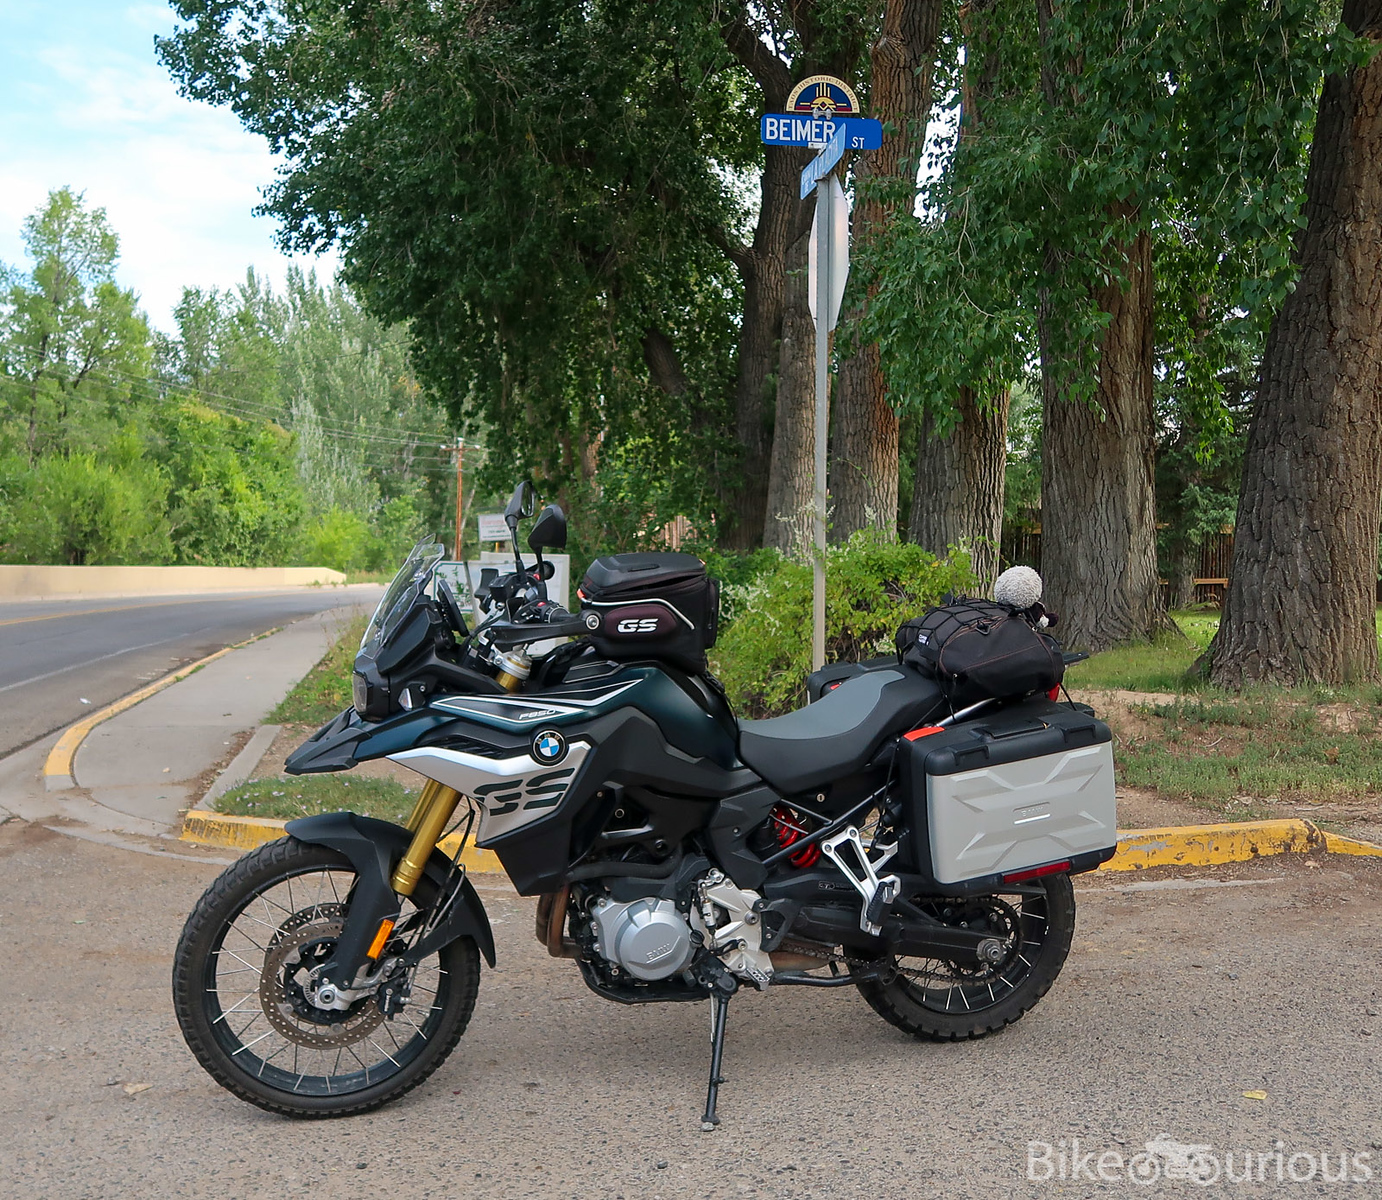 Picture Intermission – Land of Enchantment BMW Rally – Days 3+4